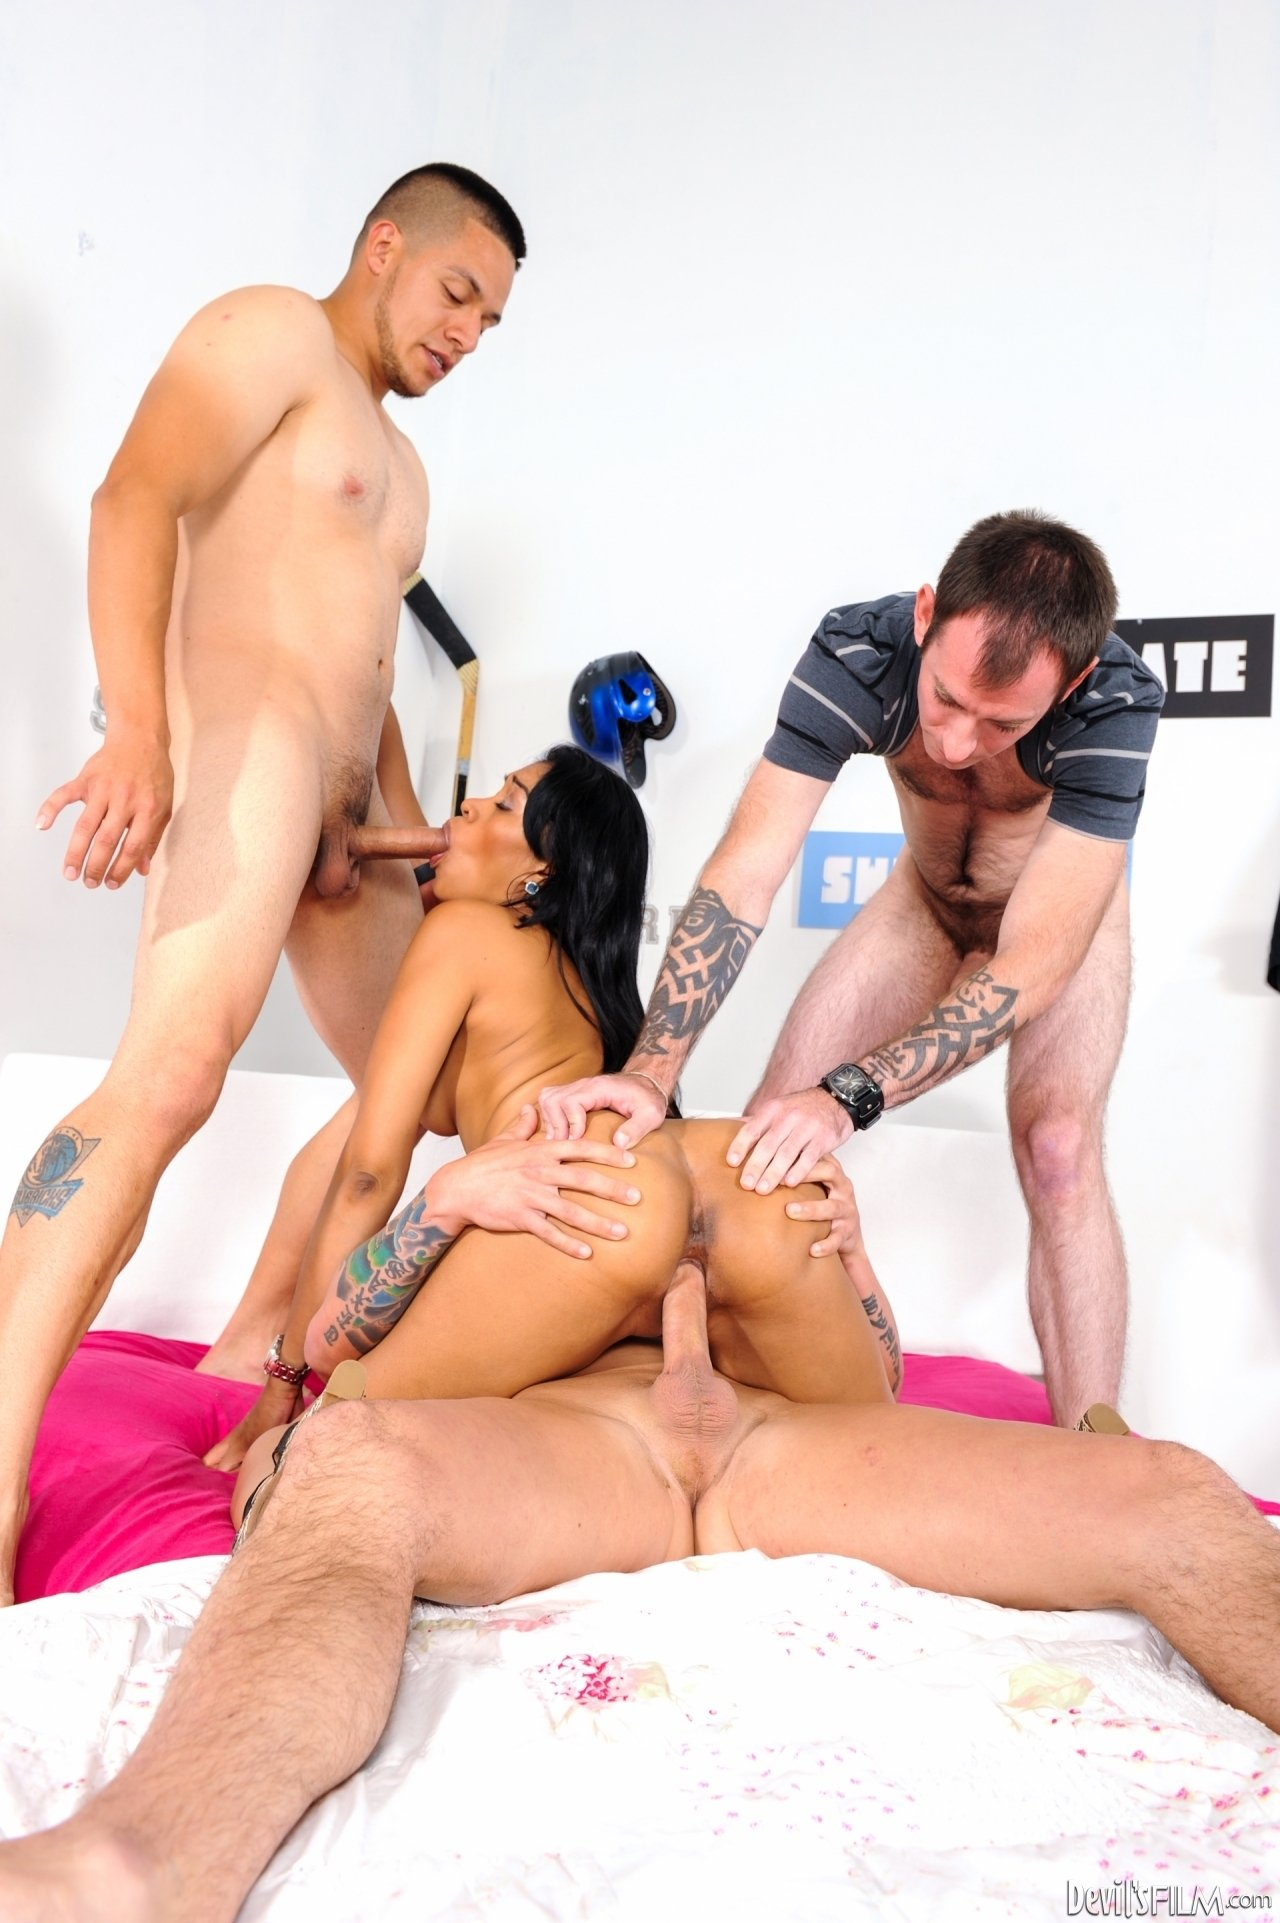 my first time giving a blow job